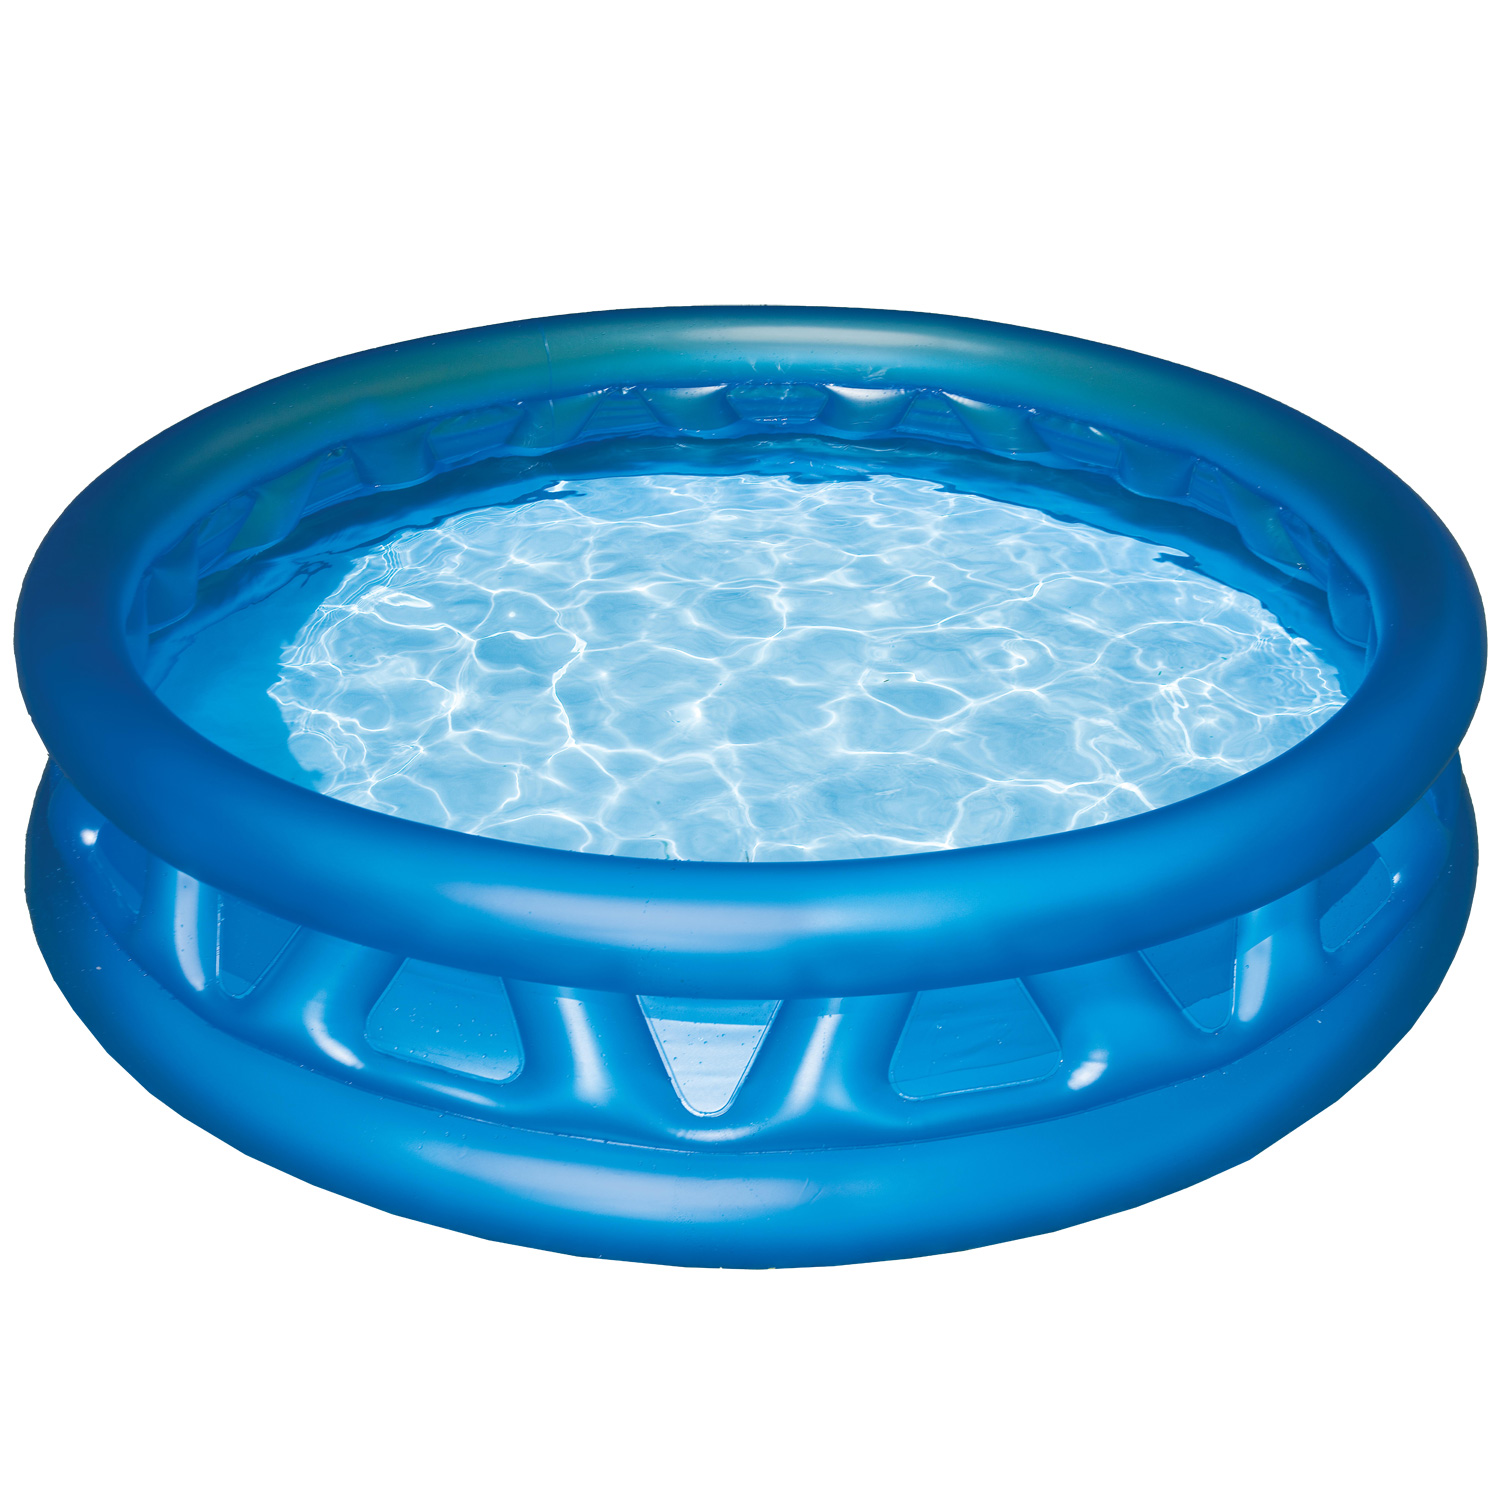 Piscine gonflable intex soft side pool raviday piscine for Piscine gonflable intex